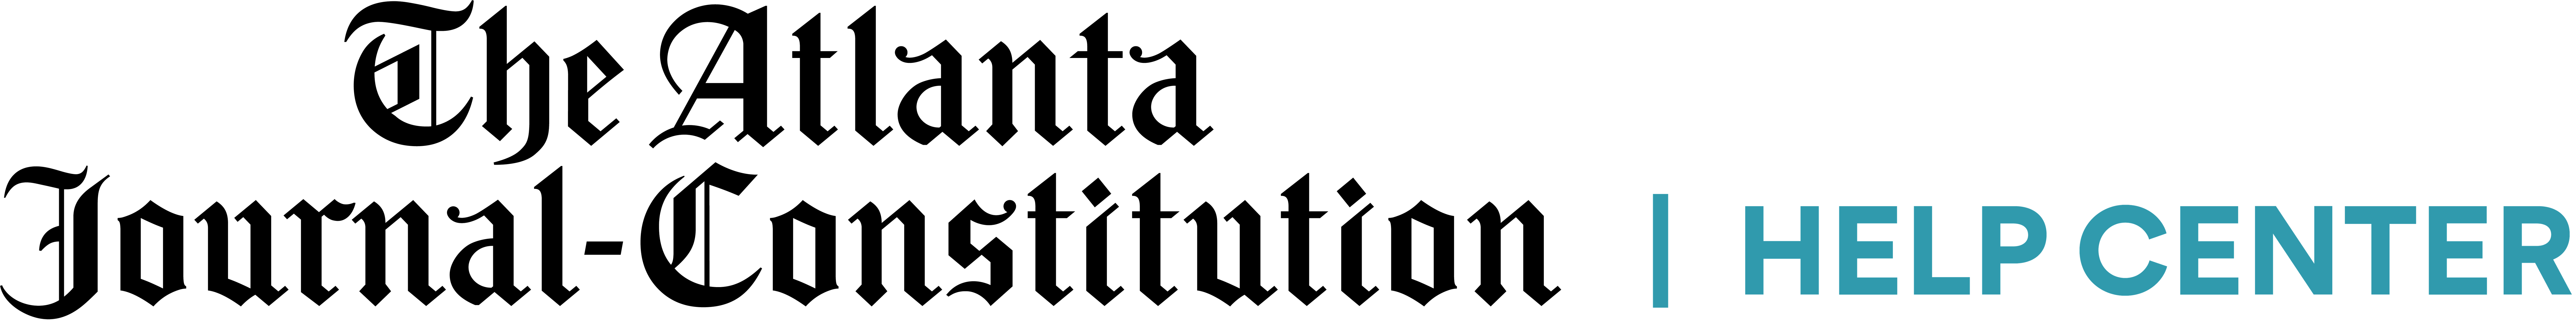 Atlanta Journal-Constitution Help Center home page